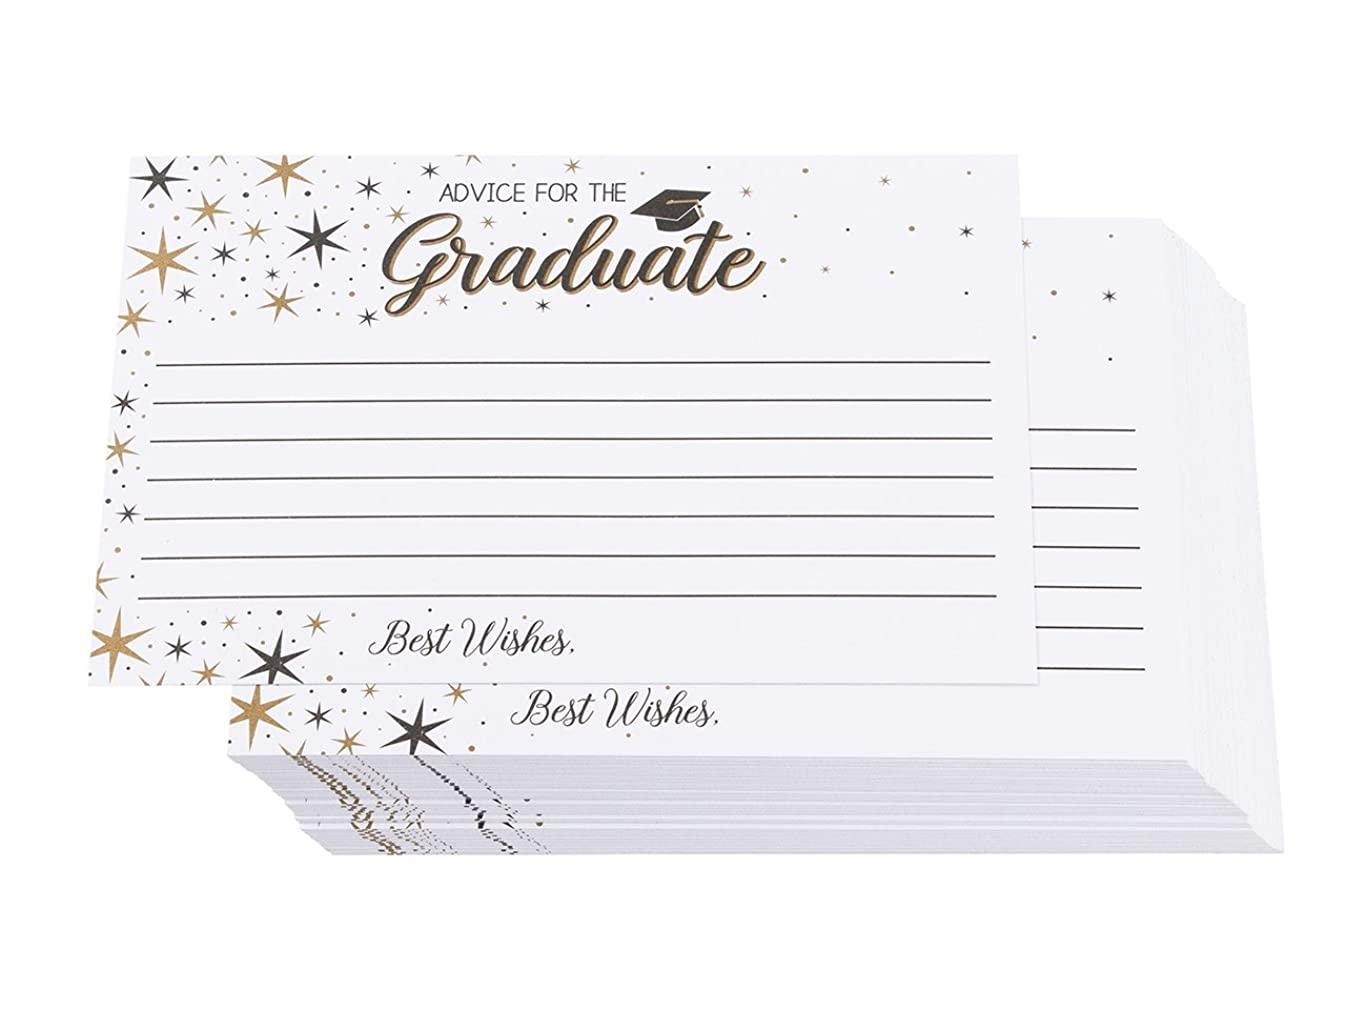 60 Pack Graduation Advice Cards - Wishing Well Cards for 2019 High School or College Graduation Party and Ceremony, Words of Wisdom Cards, Game Activity Cards, 4 x 6 Inches